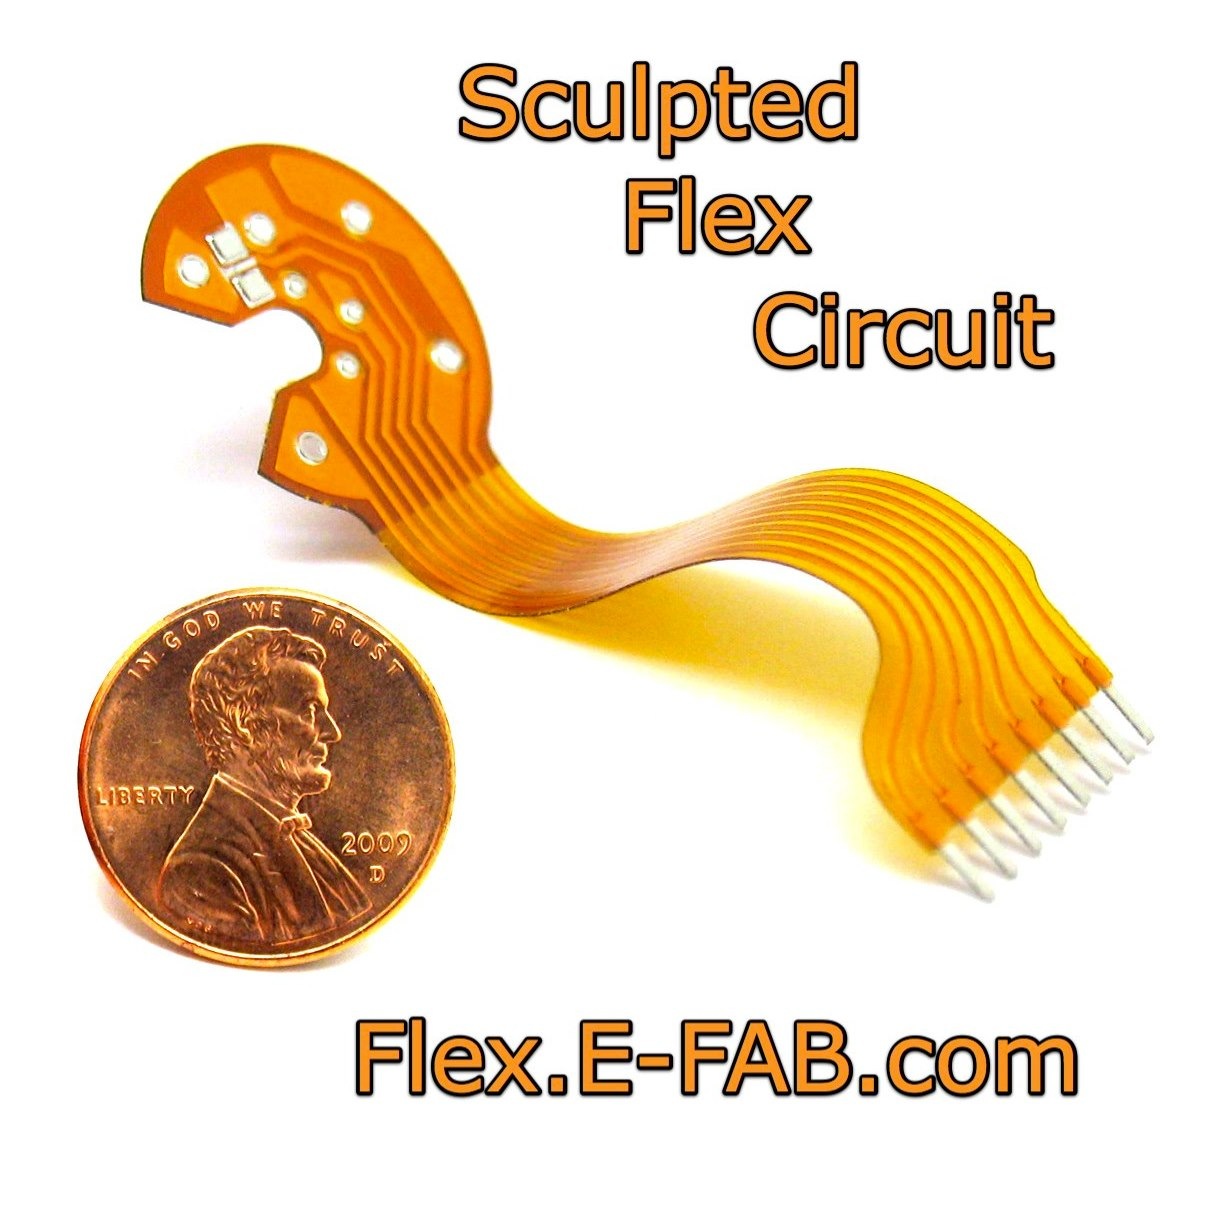 E-FAB Flex Circuits Group For Military And Commercial Apps